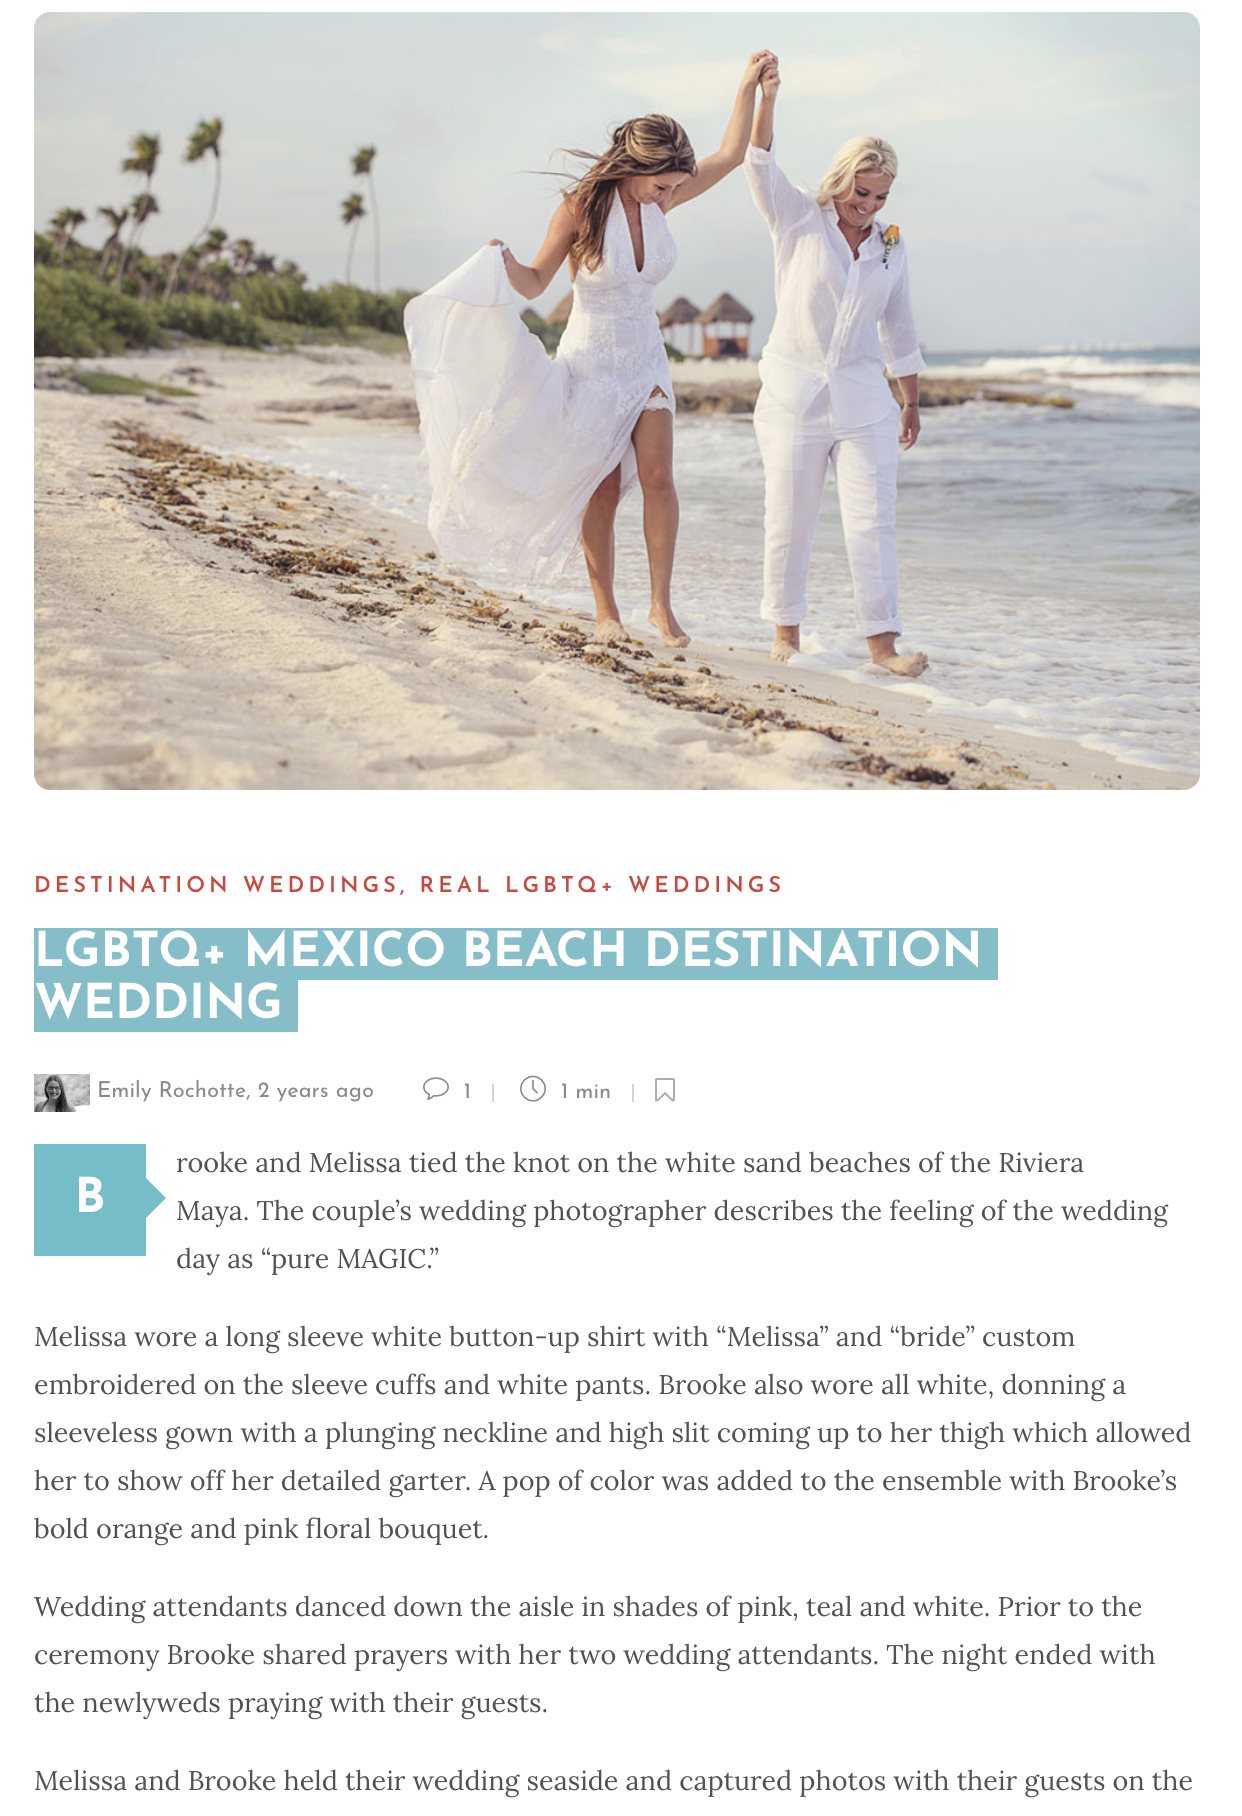 LGBTQ+ MEXICO BEACH DESTINATION WEDDING